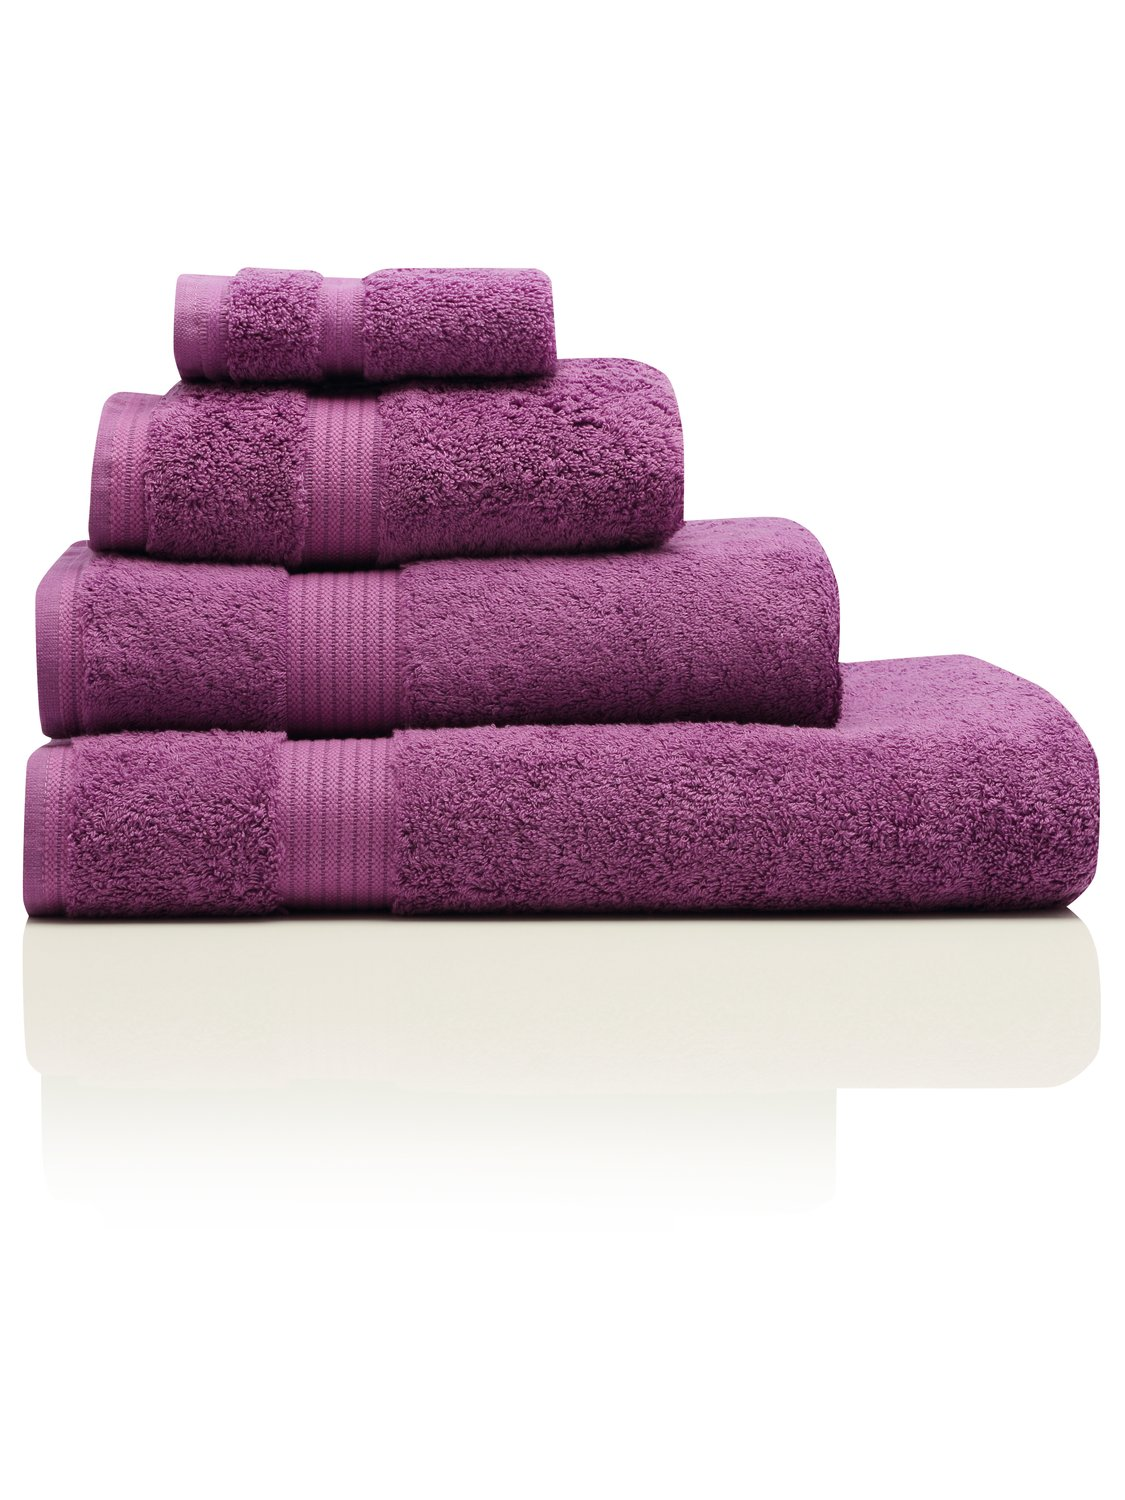 100% Combed Cotton 580Gsm Soft And Absorbent Bathroom Facecloth - Orchid